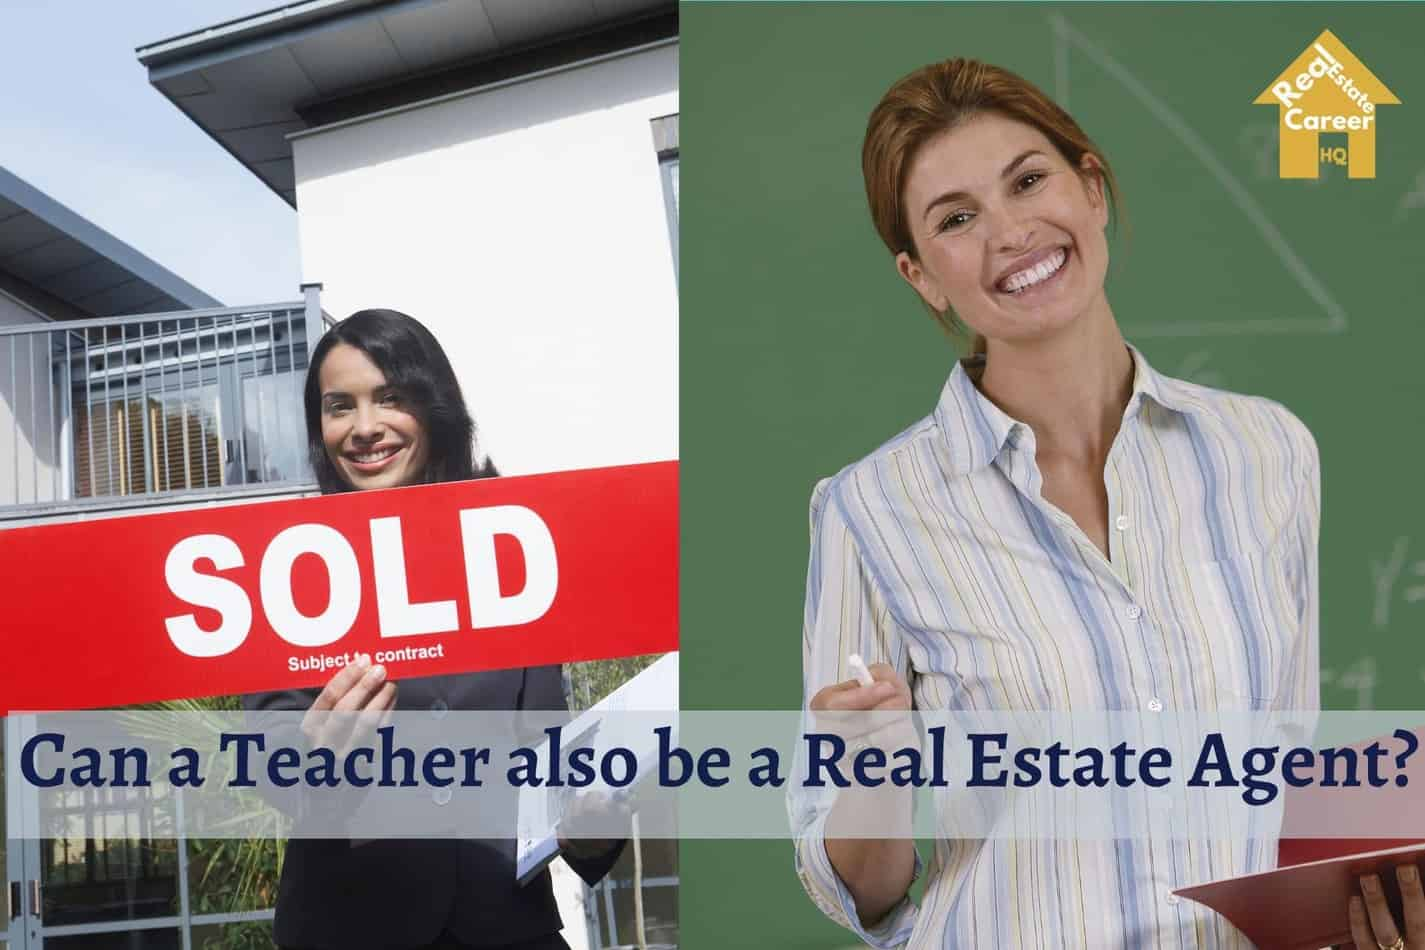 Can a Teacher also be a Real Estate Agent?